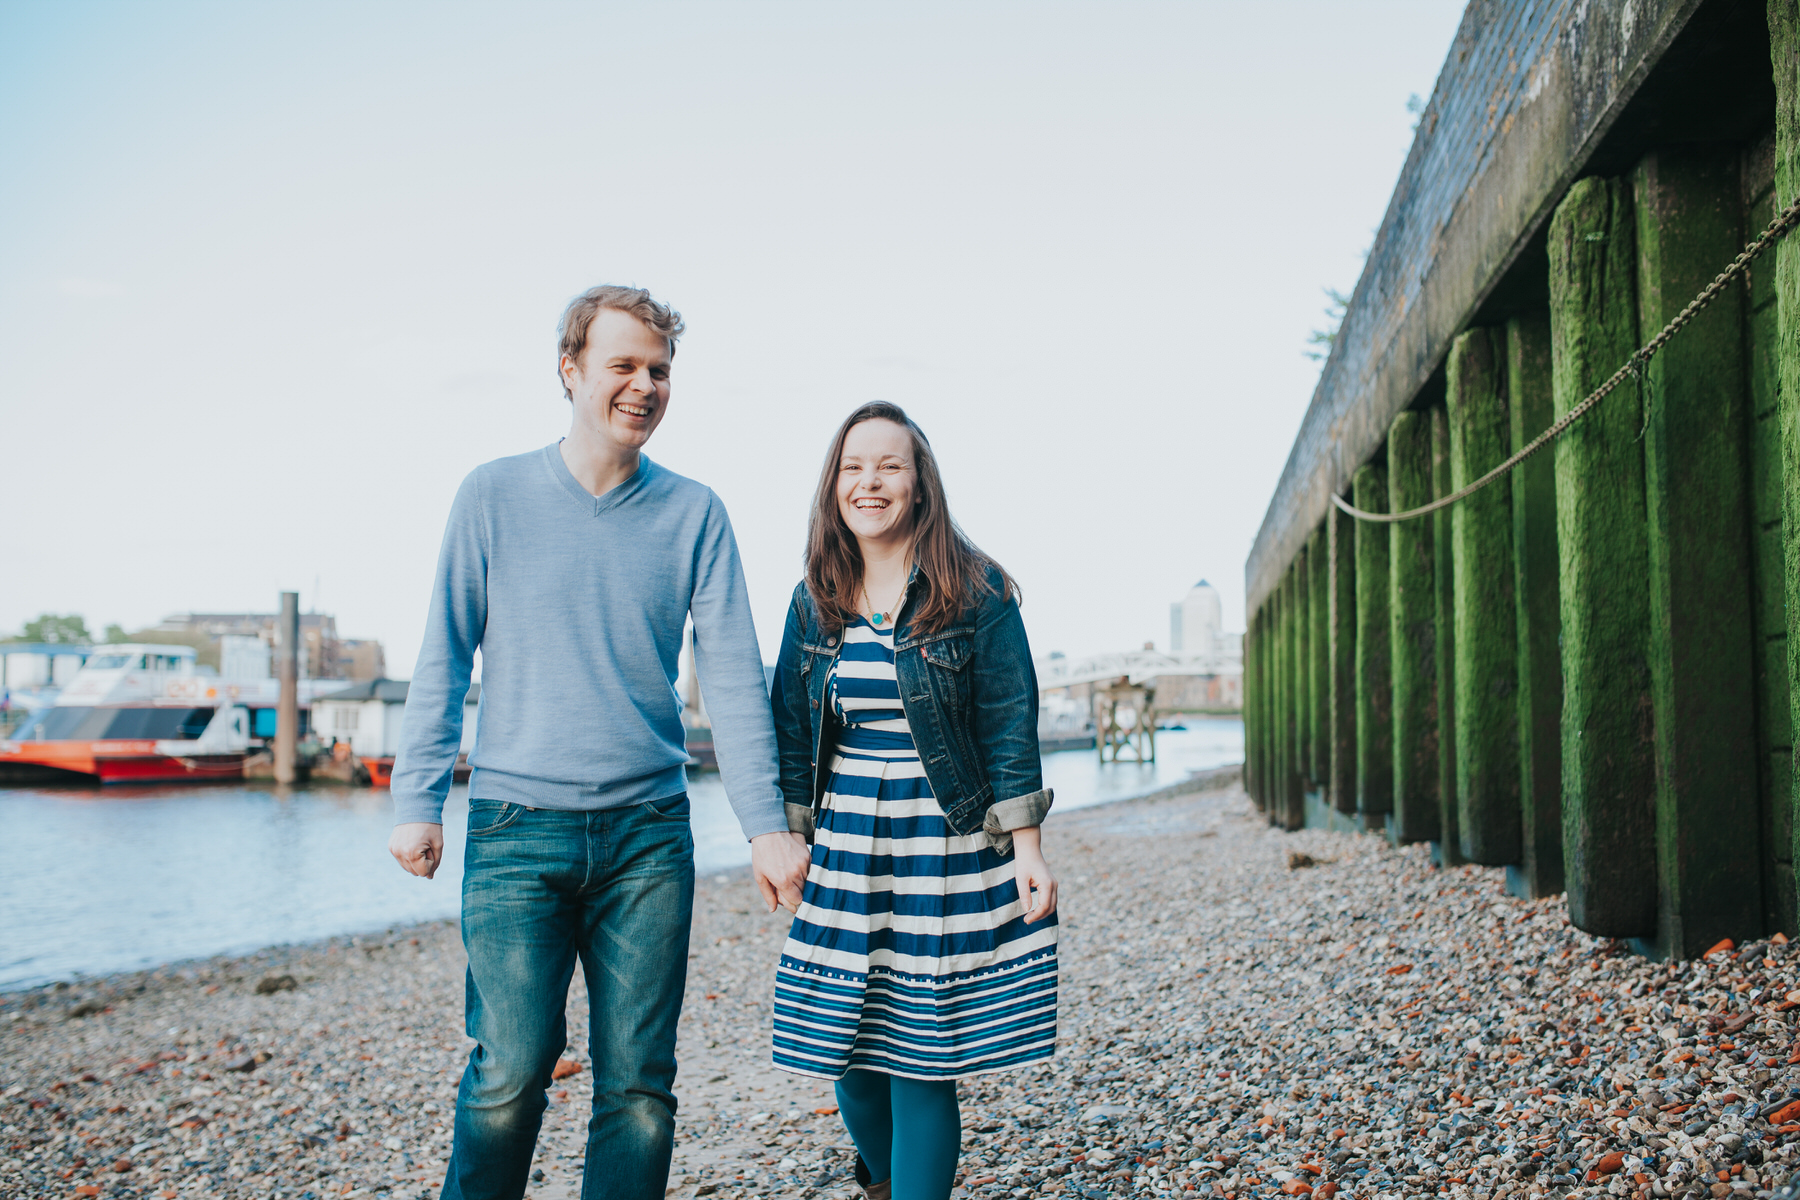 2-Quirky-engagement-London-couple-rotherhithe-beach.jpg